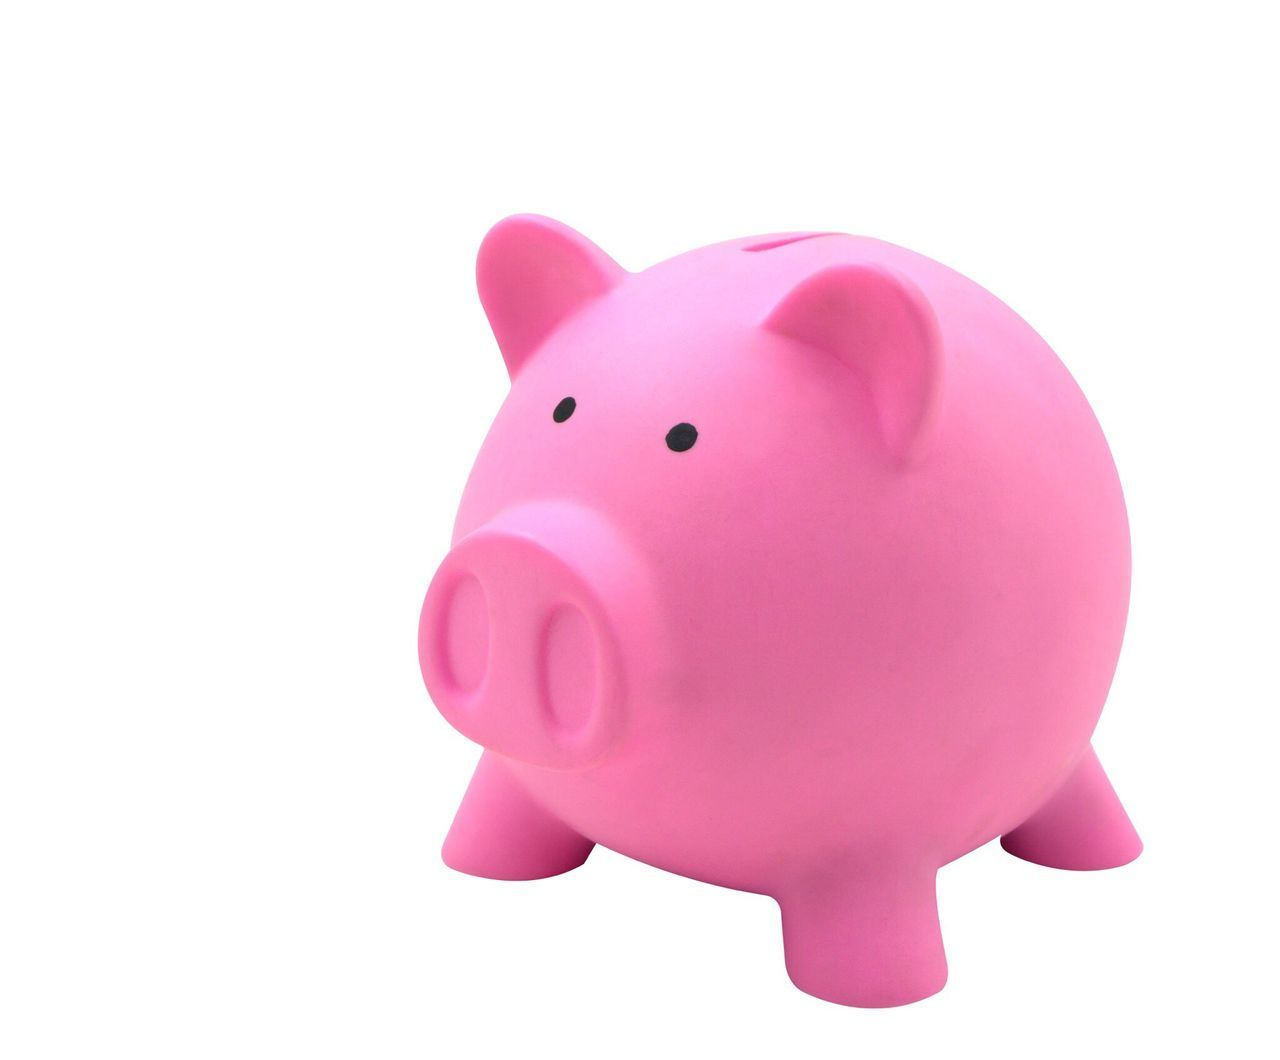 Finance Piggy Bank Savings Studio Shot Pink Color Investment White Background Wealth Rain Responsibility Making Money Consumerism Trust No People Pig Piggy Bank Piggy Piggybank Isolated